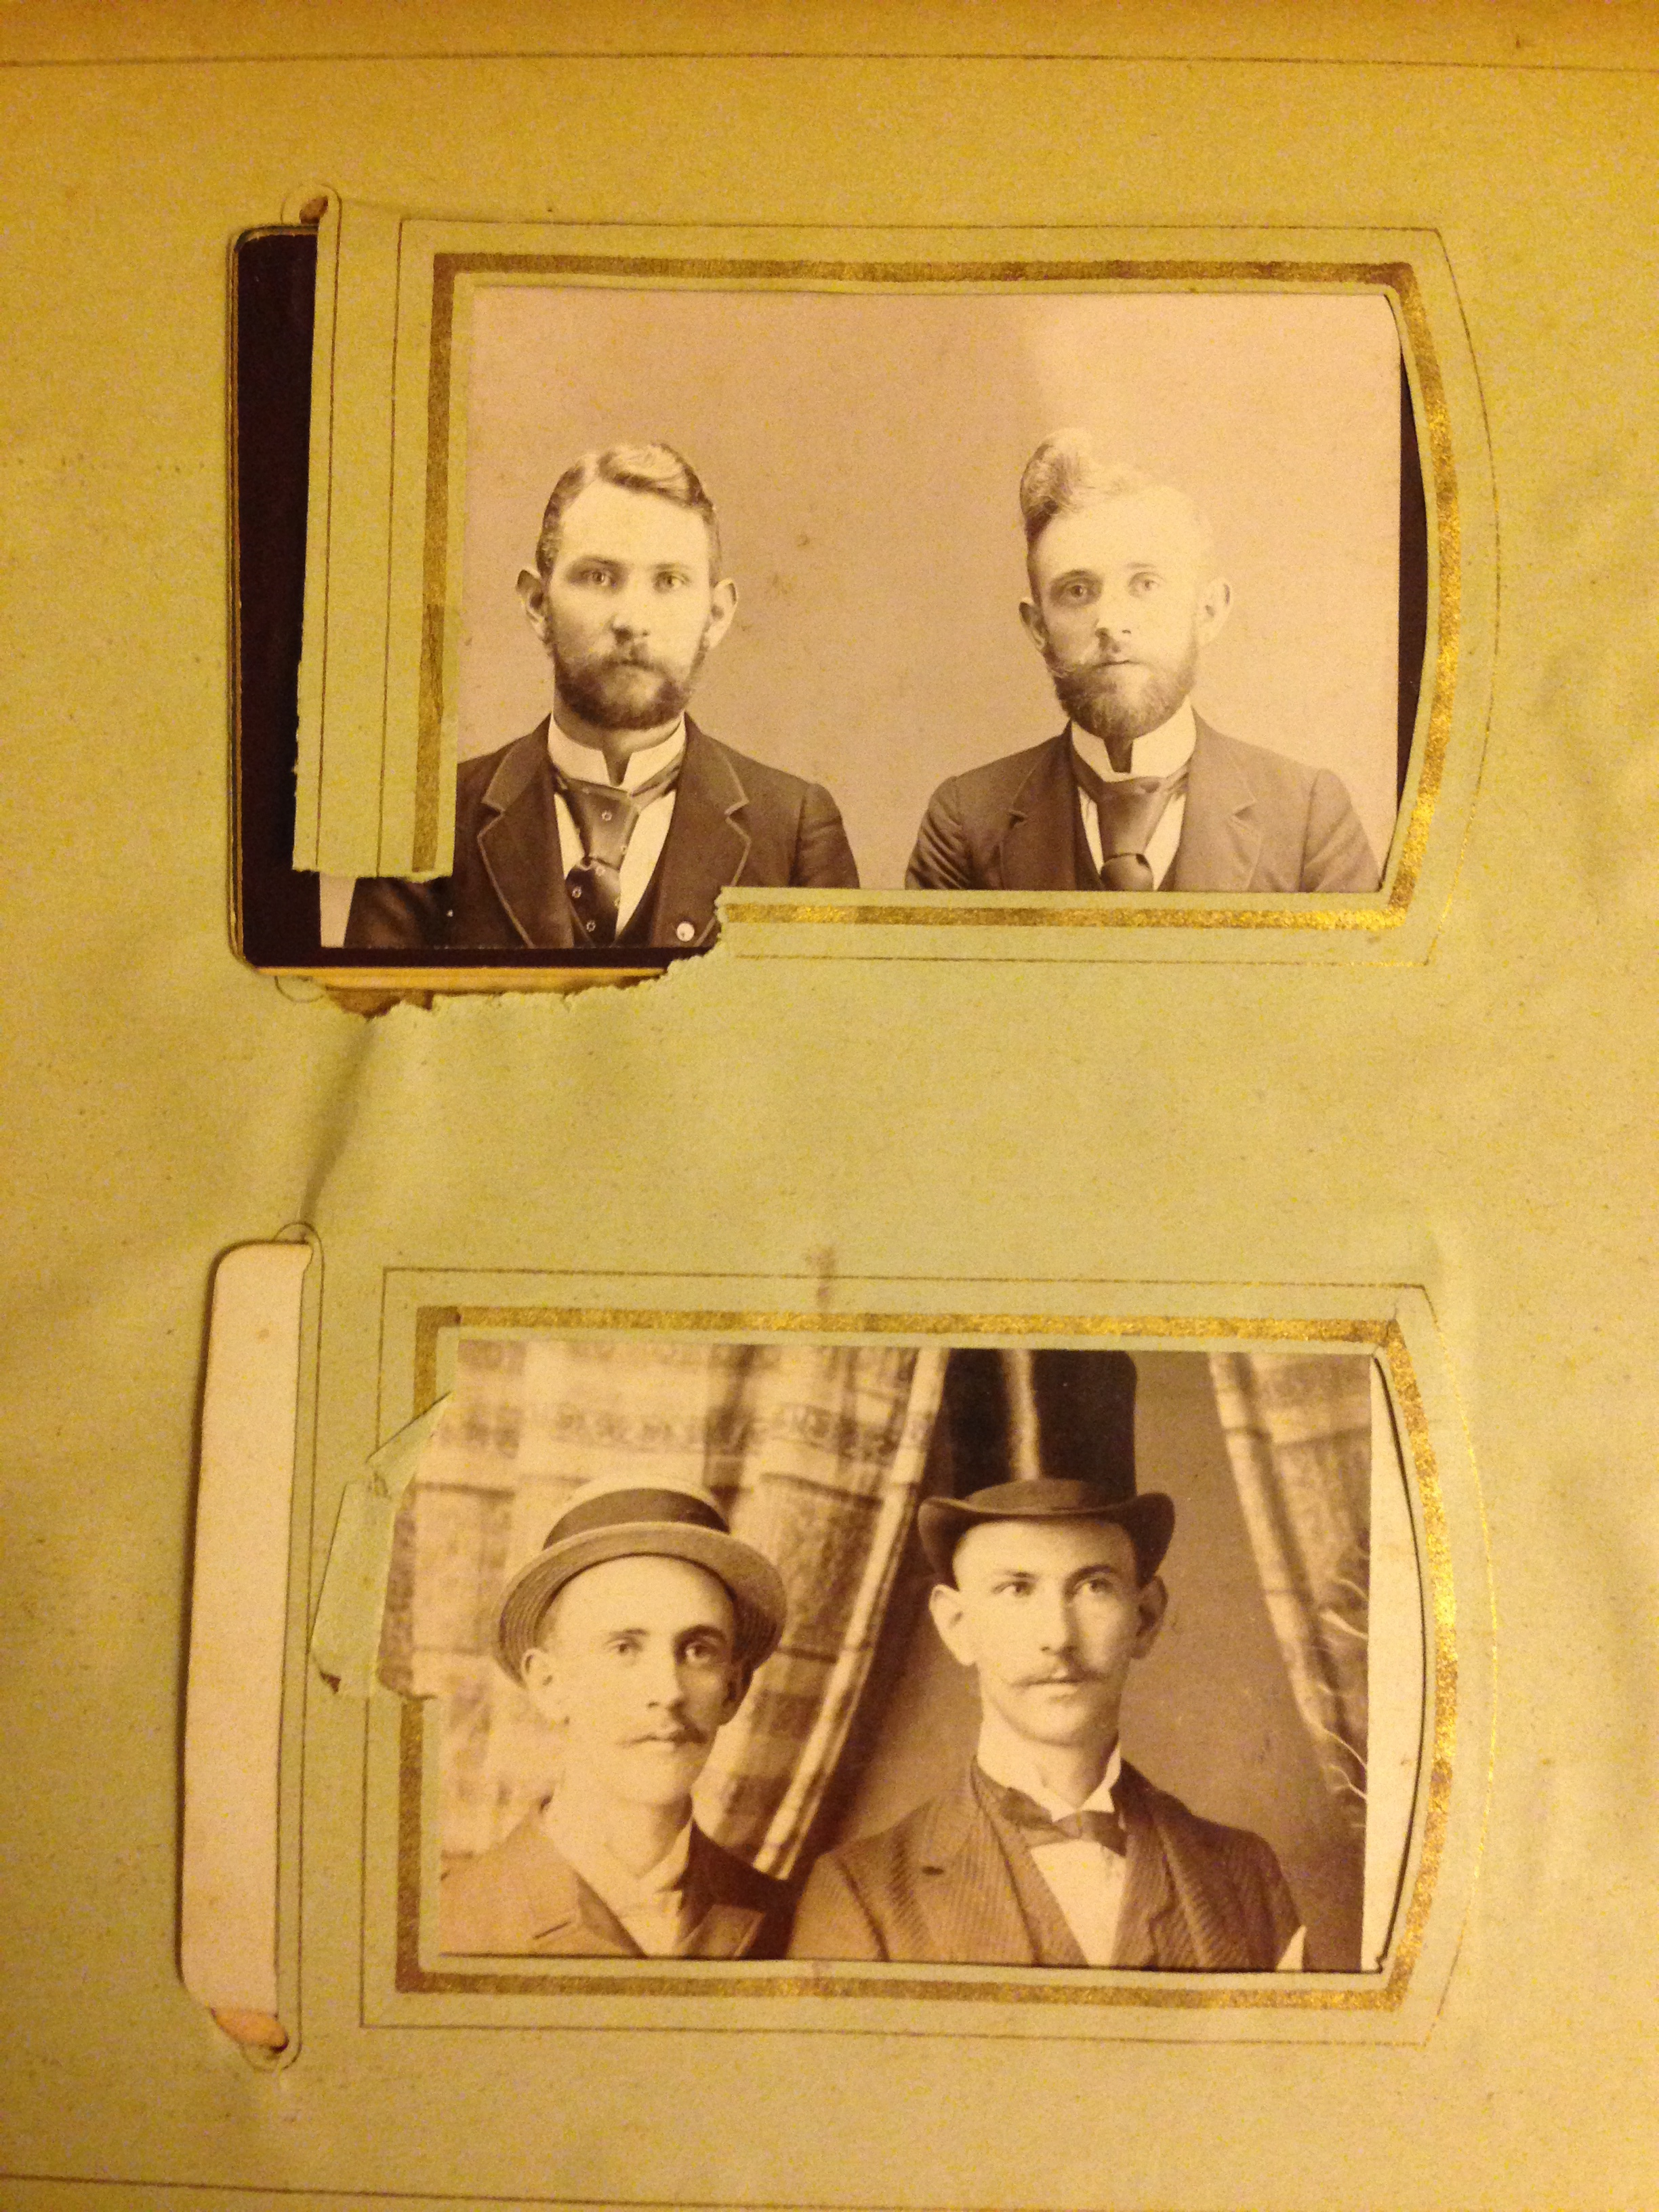 The original hipsters. Our friends ancestors really rocked those styles.